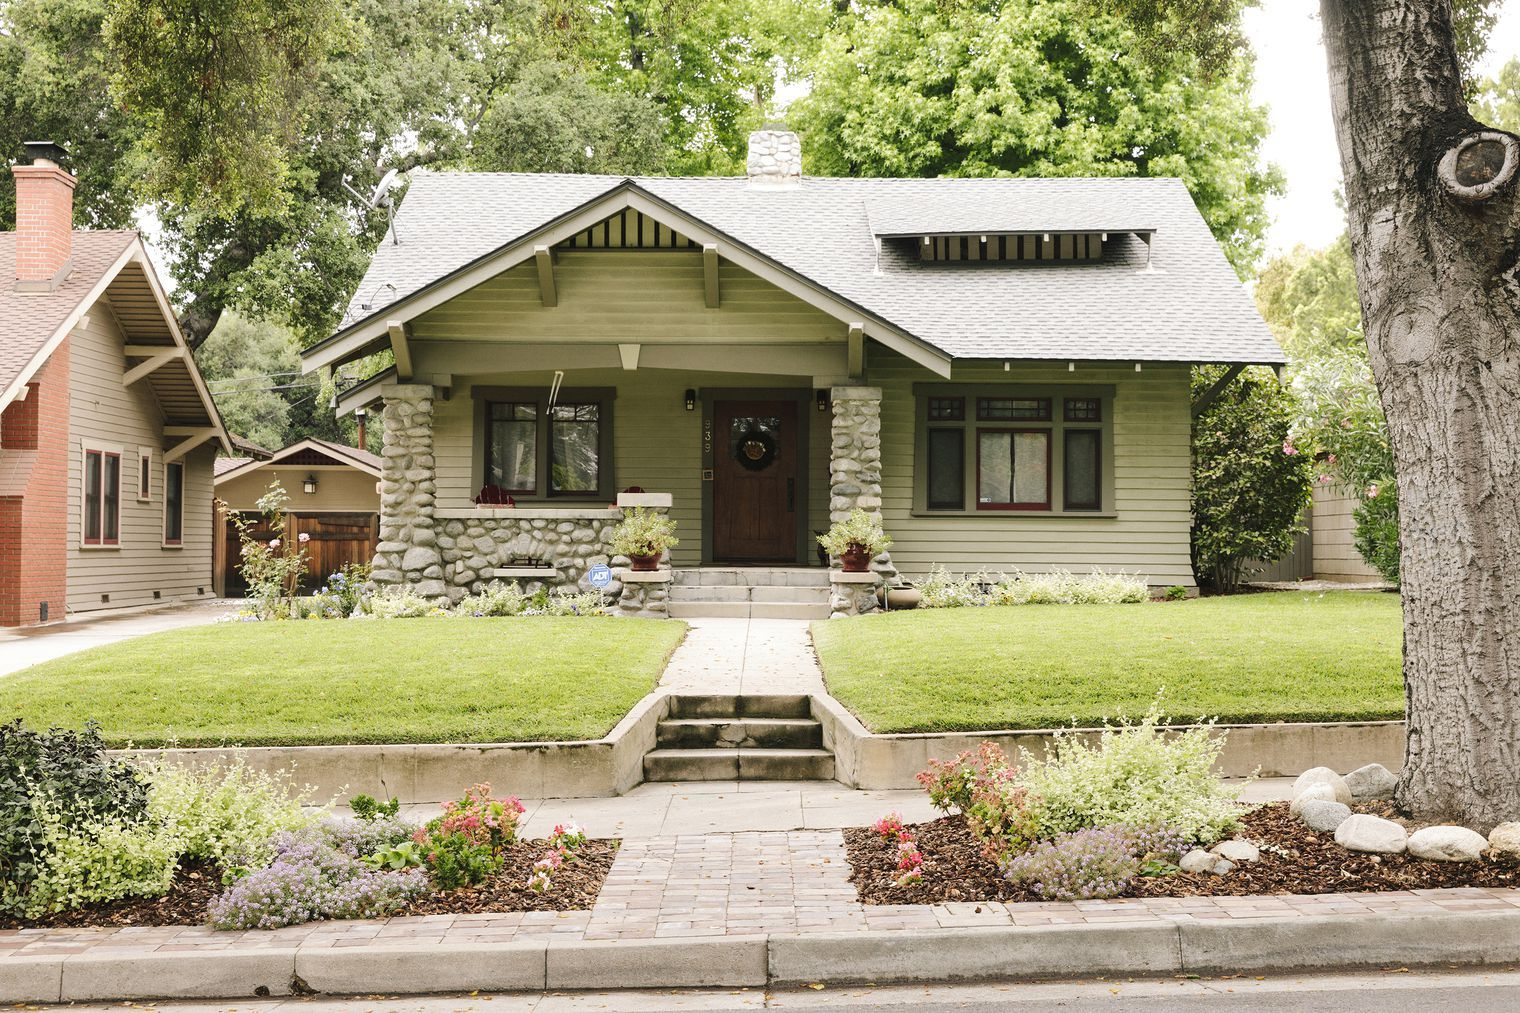 La Bungalow Renting A House Rental Homes Near Me House Prices